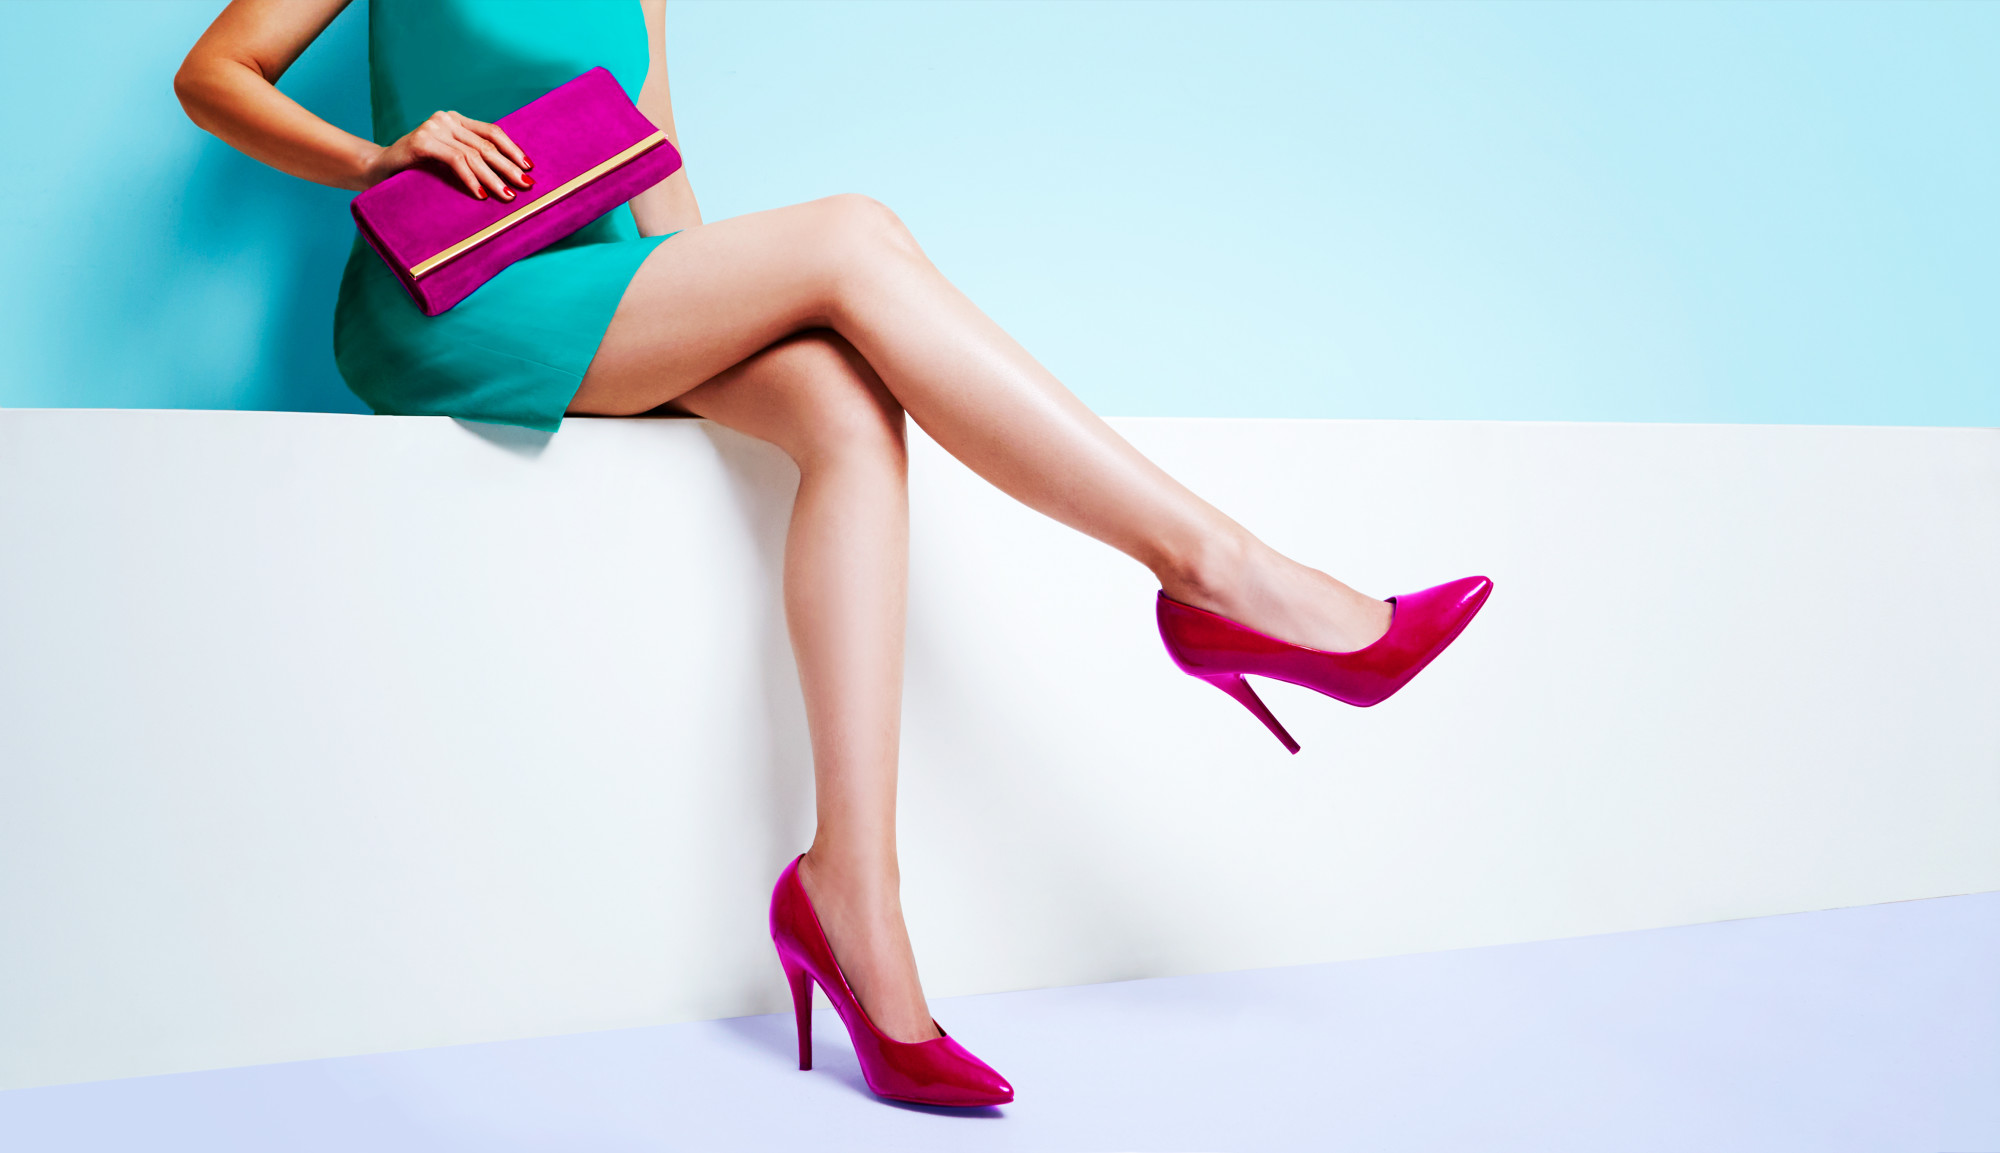 4 Effective Ways to Get Smooth Legs